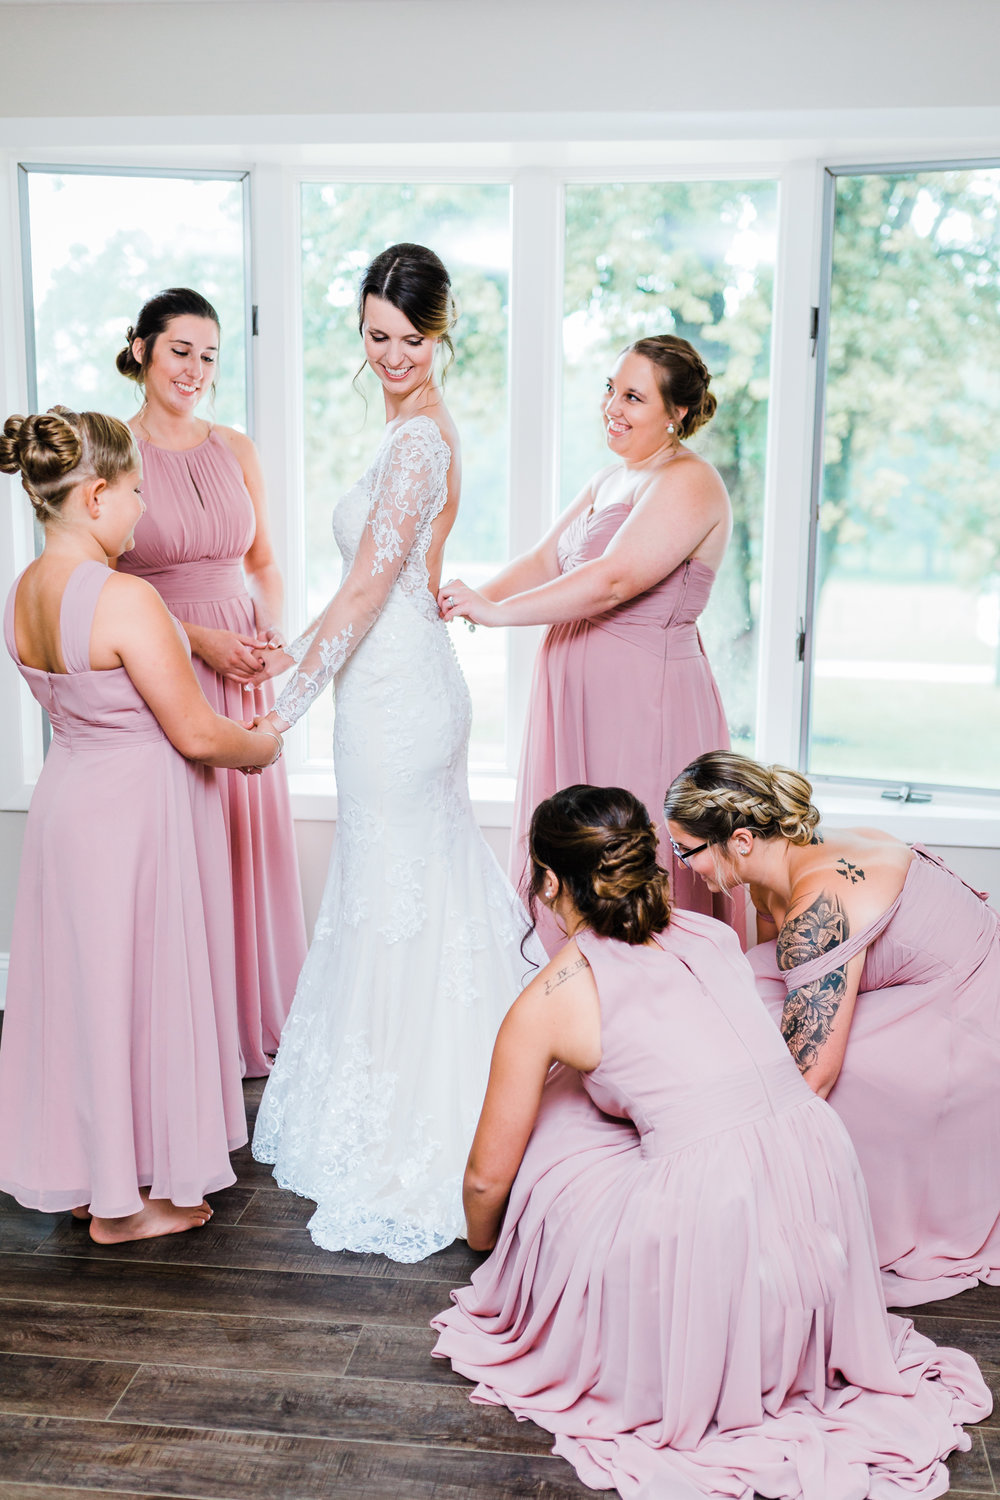 bride getting ready with her bridesmaids - cascade, maryland wedding